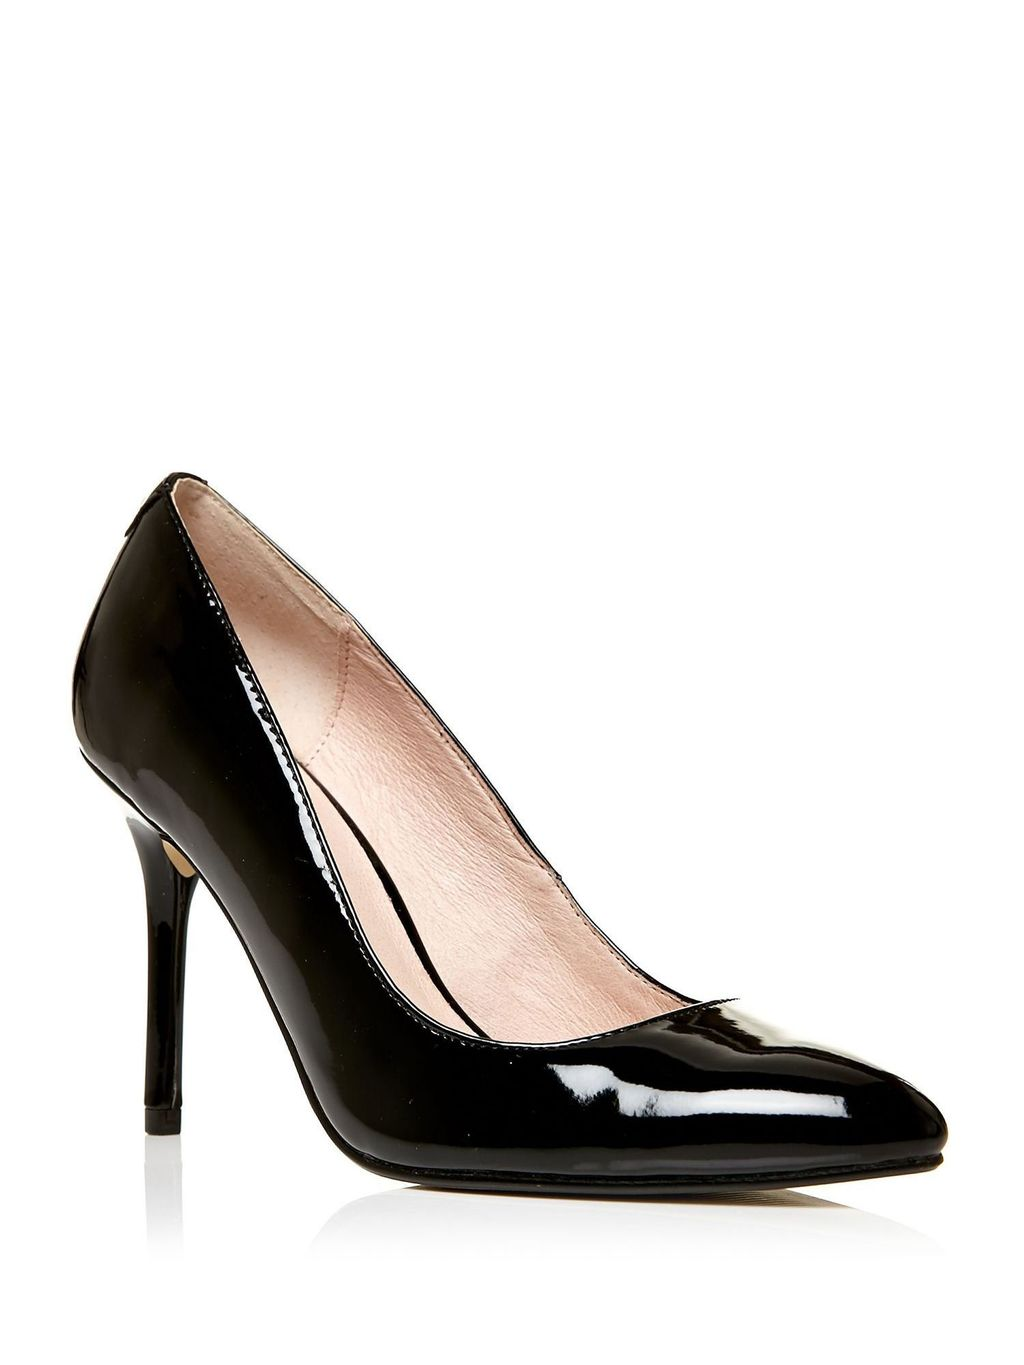 Ceisa High Heel Court Shoes, Black - predominant colour: black; occasions: evening; material: faux leather; heel height: high; heel: stiletto; toe: pointed toe; style: courts; finish: patent; pattern: plain; season: s/s 2016; wardrobe: event